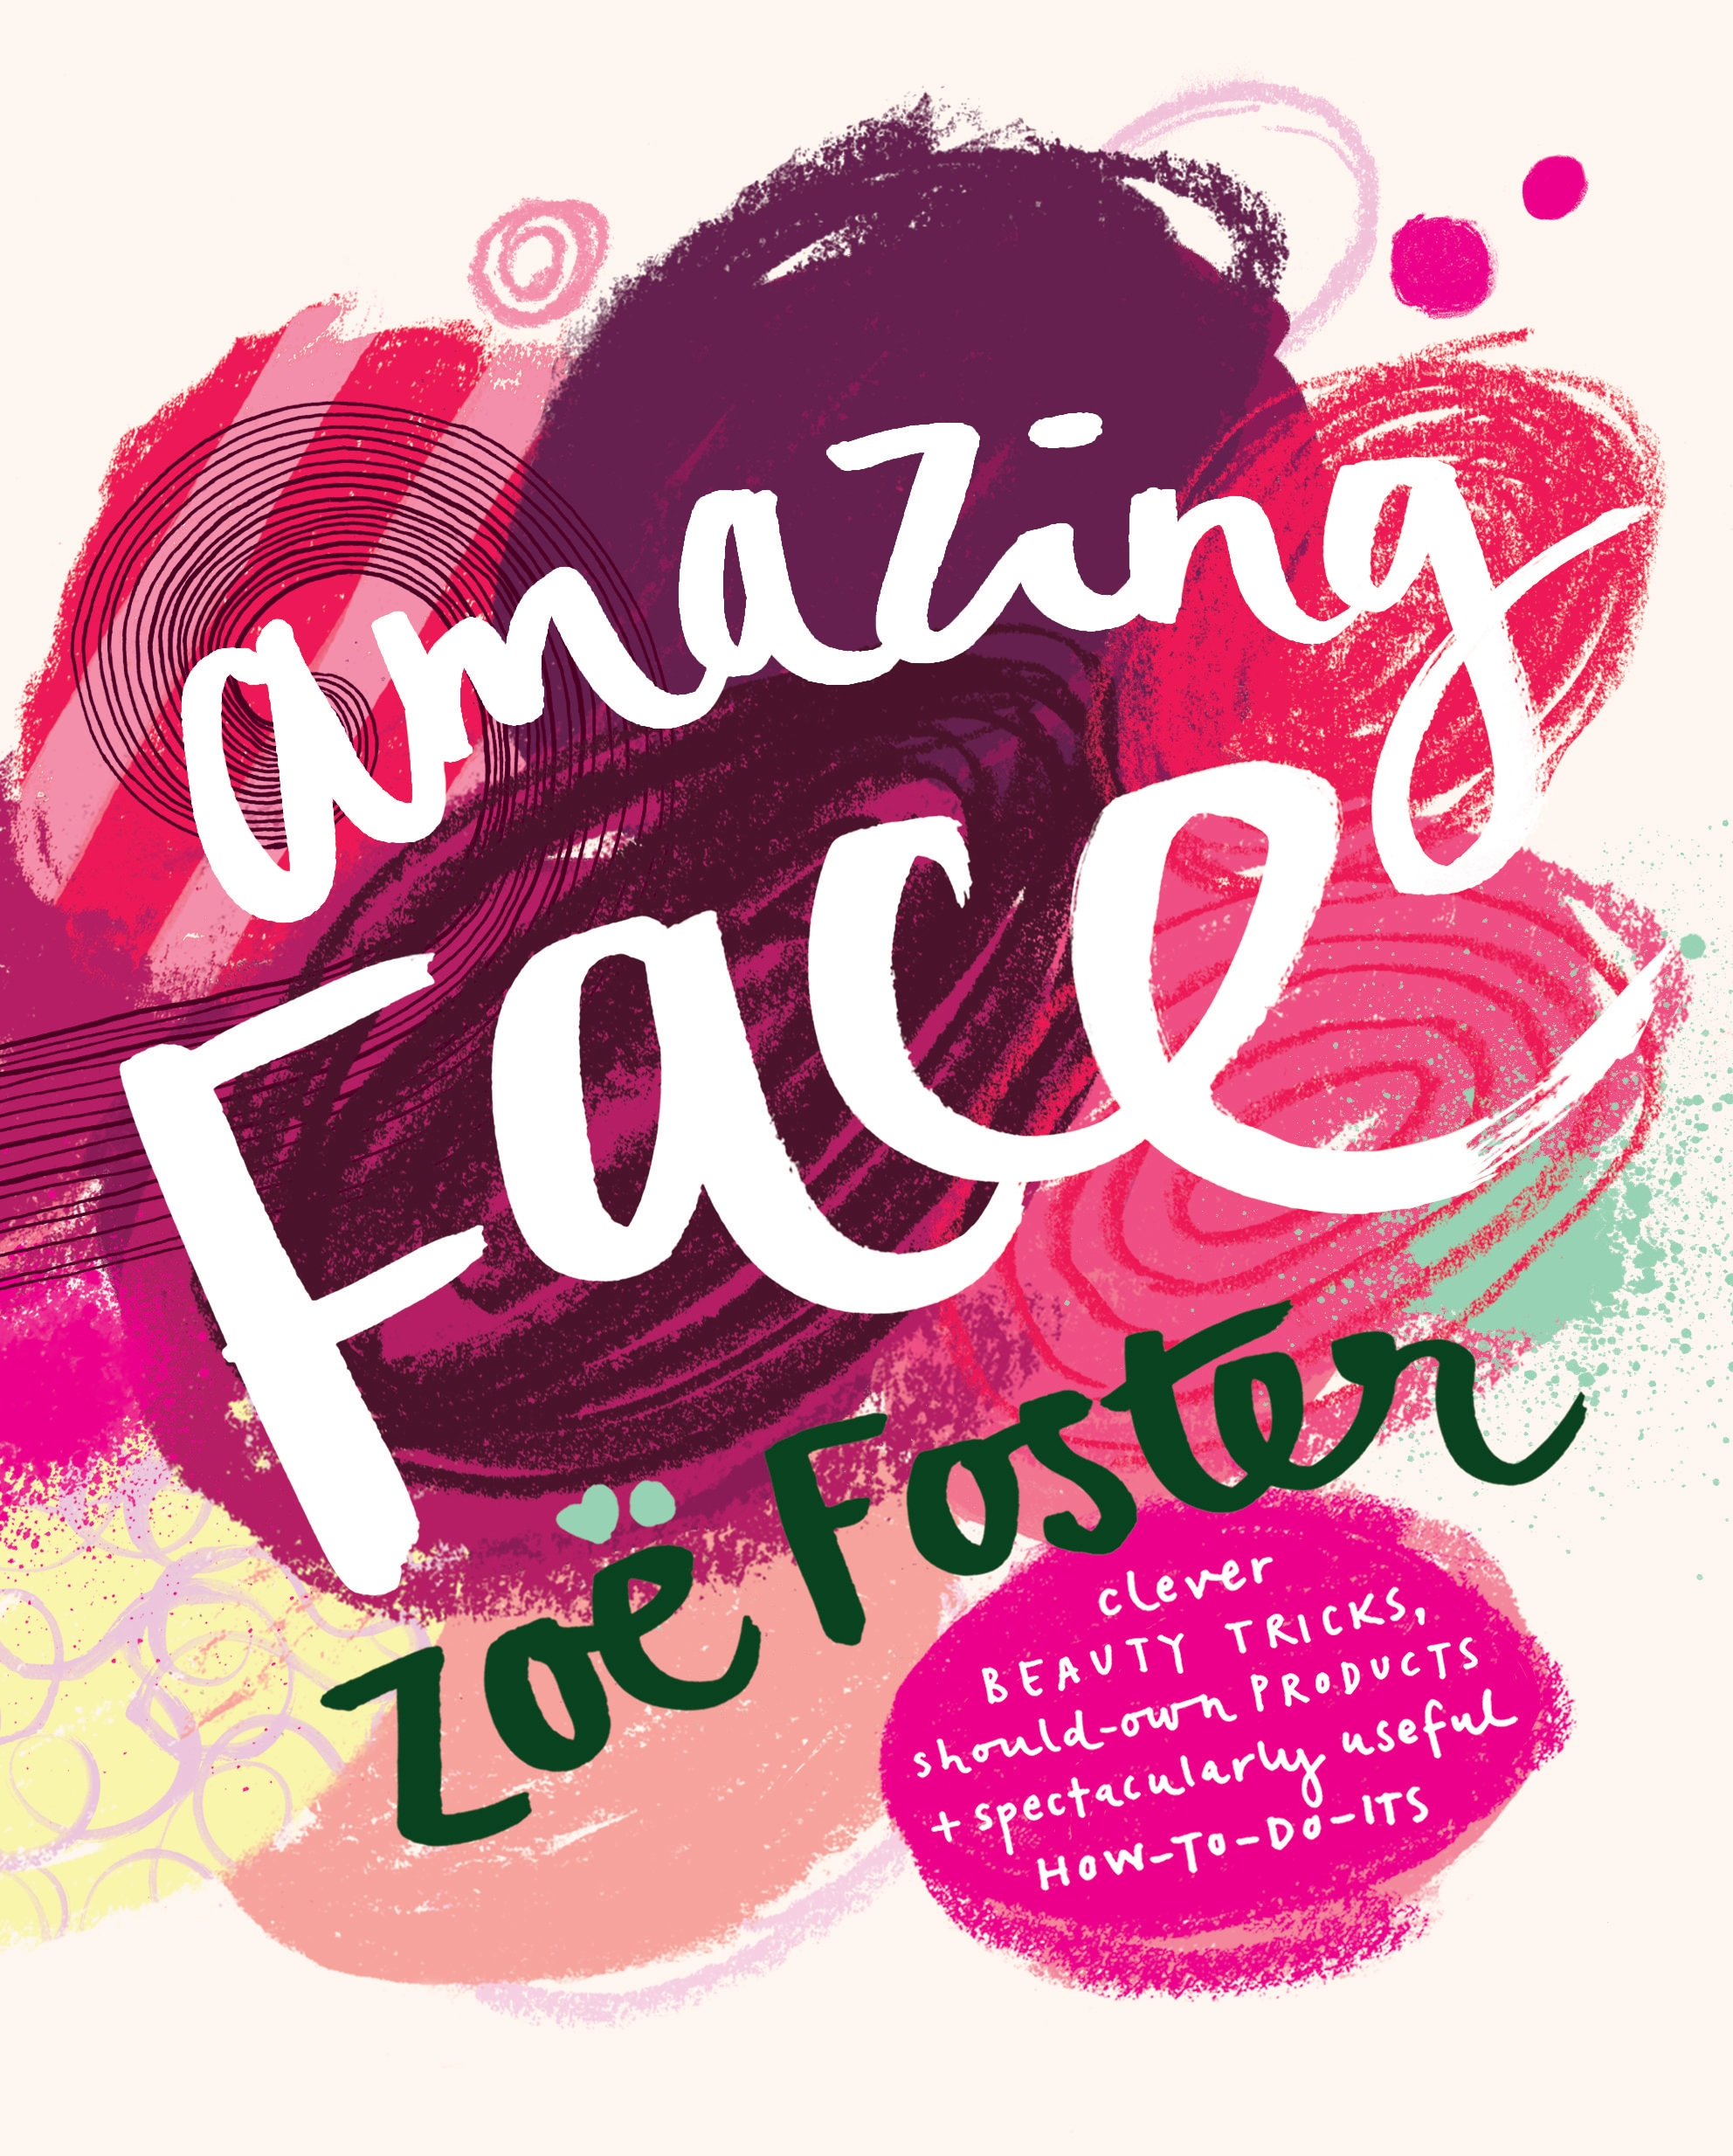 Book Cover:  Amazing Face: clever beauty tricks, should-own products + spectacularly useful how-to-do-its